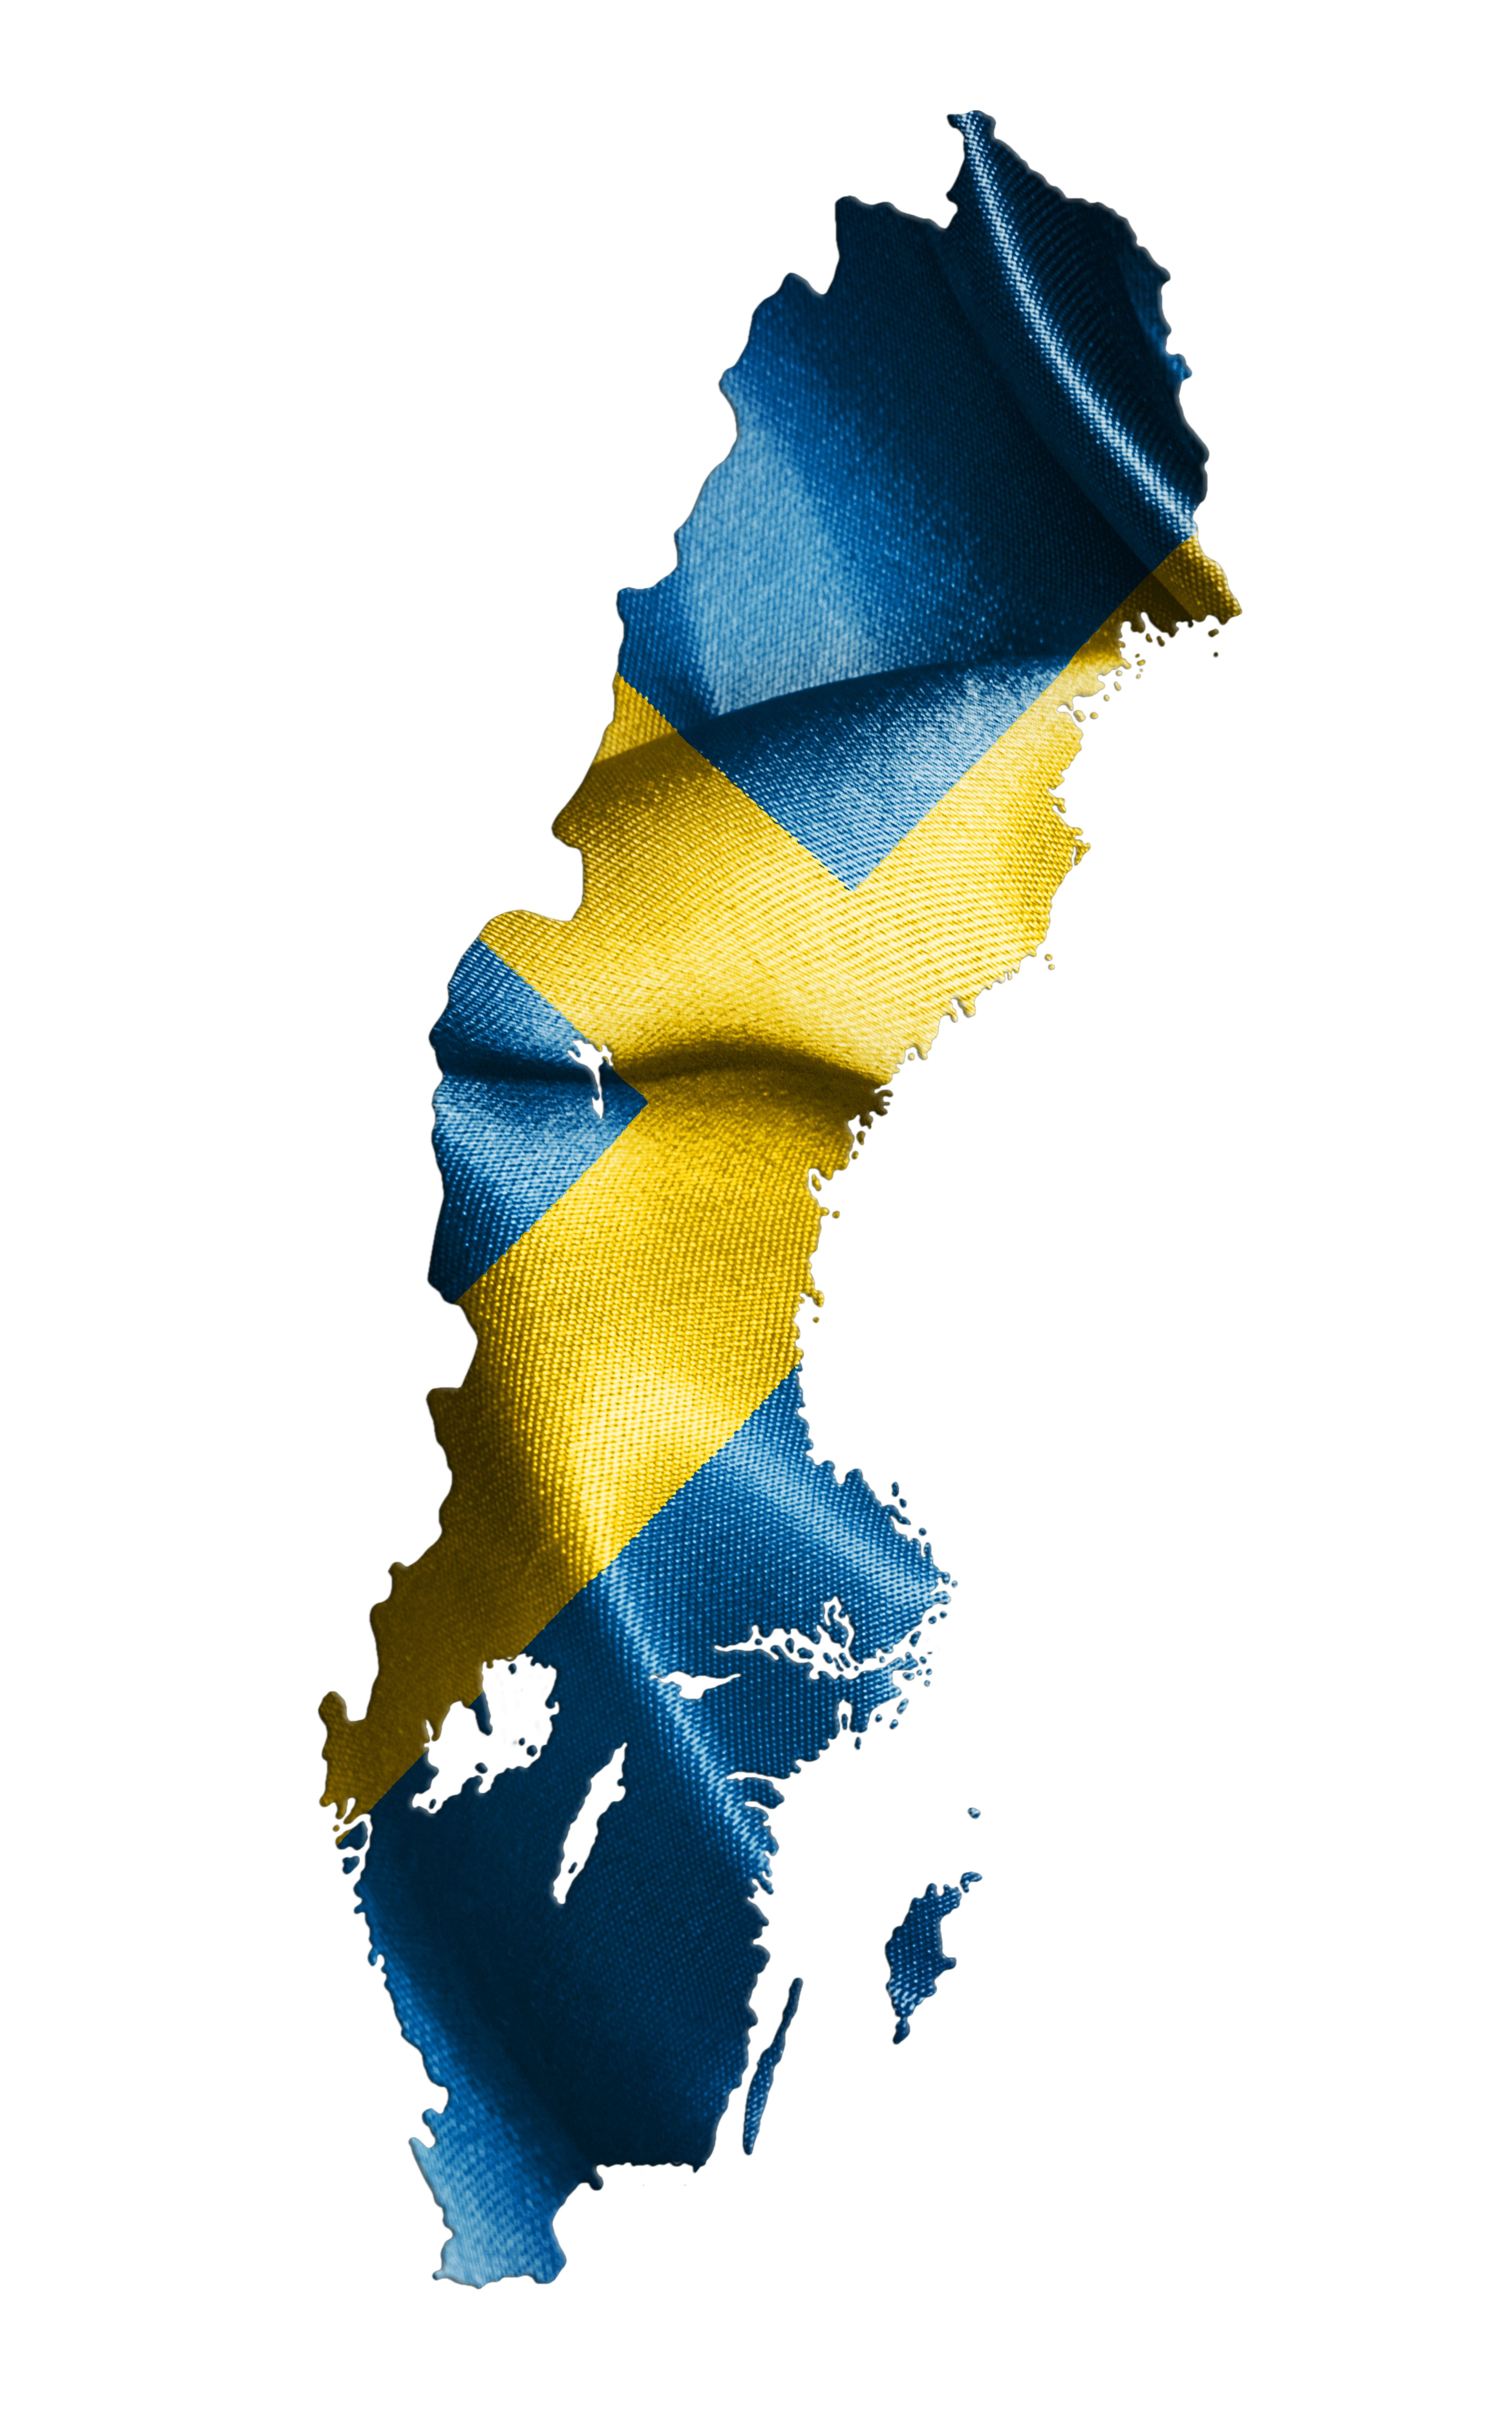 Sweden National Flag and Map Isolated On White Background 3D ... on street view of sweden, outline map of sweden, blackout map of sweden, interactive map of sweden, travel map of sweden, coloring map of sweden, cartoon map of sweden, cute map of sweden, vintage map of sweden, hd map of sweden, food map of sweden, terrain map of sweden, print map of sweden, google map of sweden, black map of sweden,